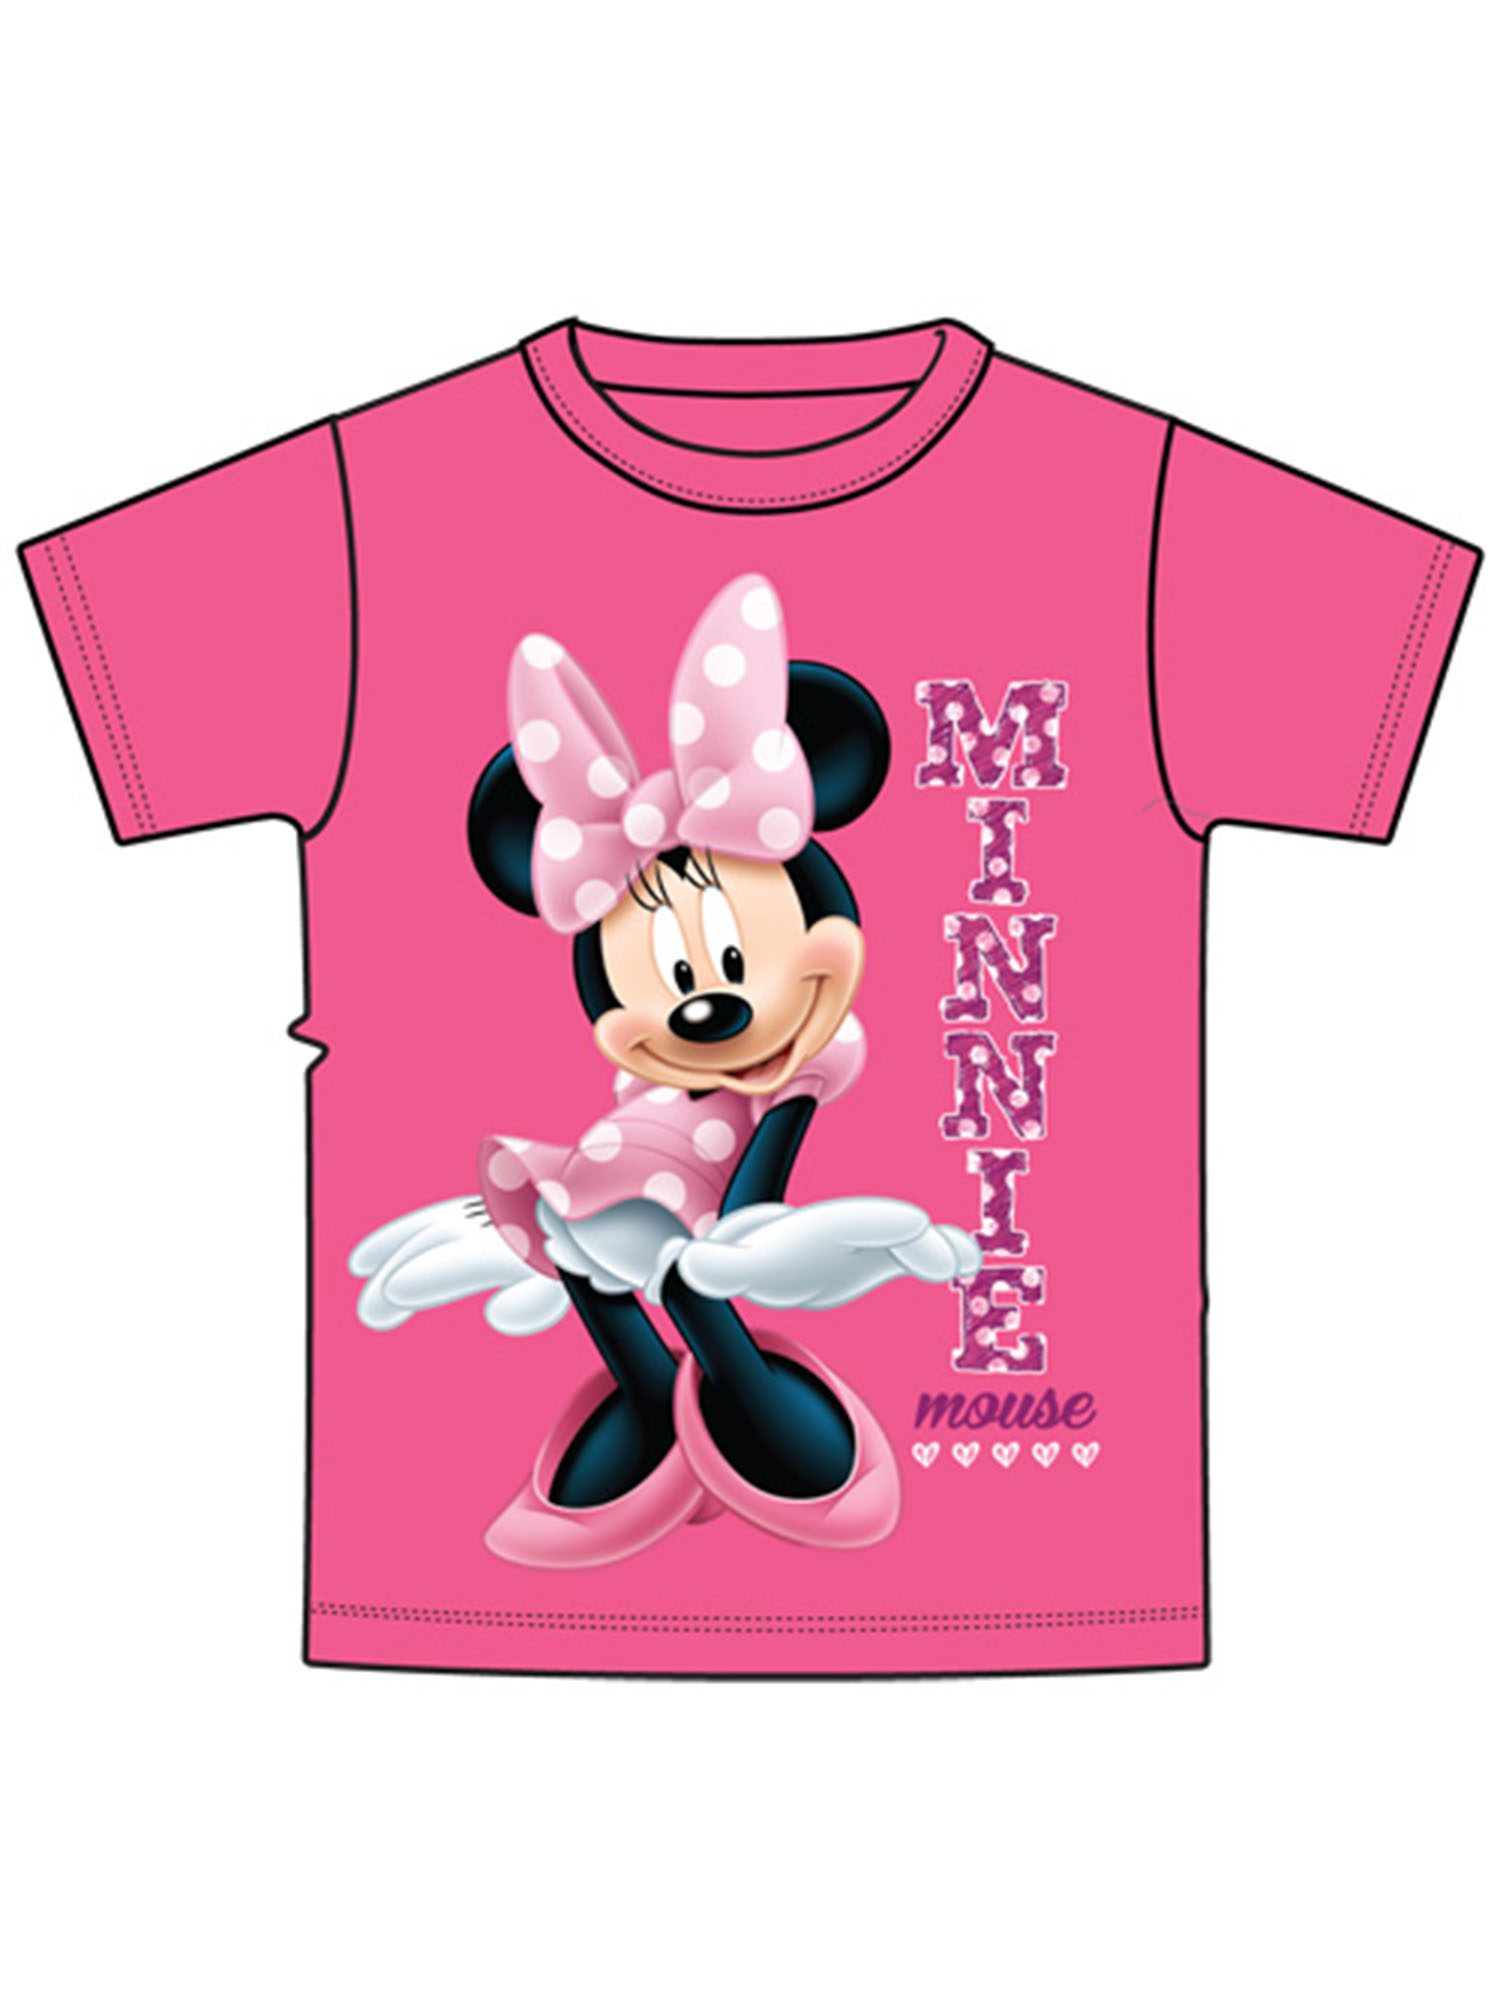 Disney Toddler Sassy Minnie - Pink 2T Tee